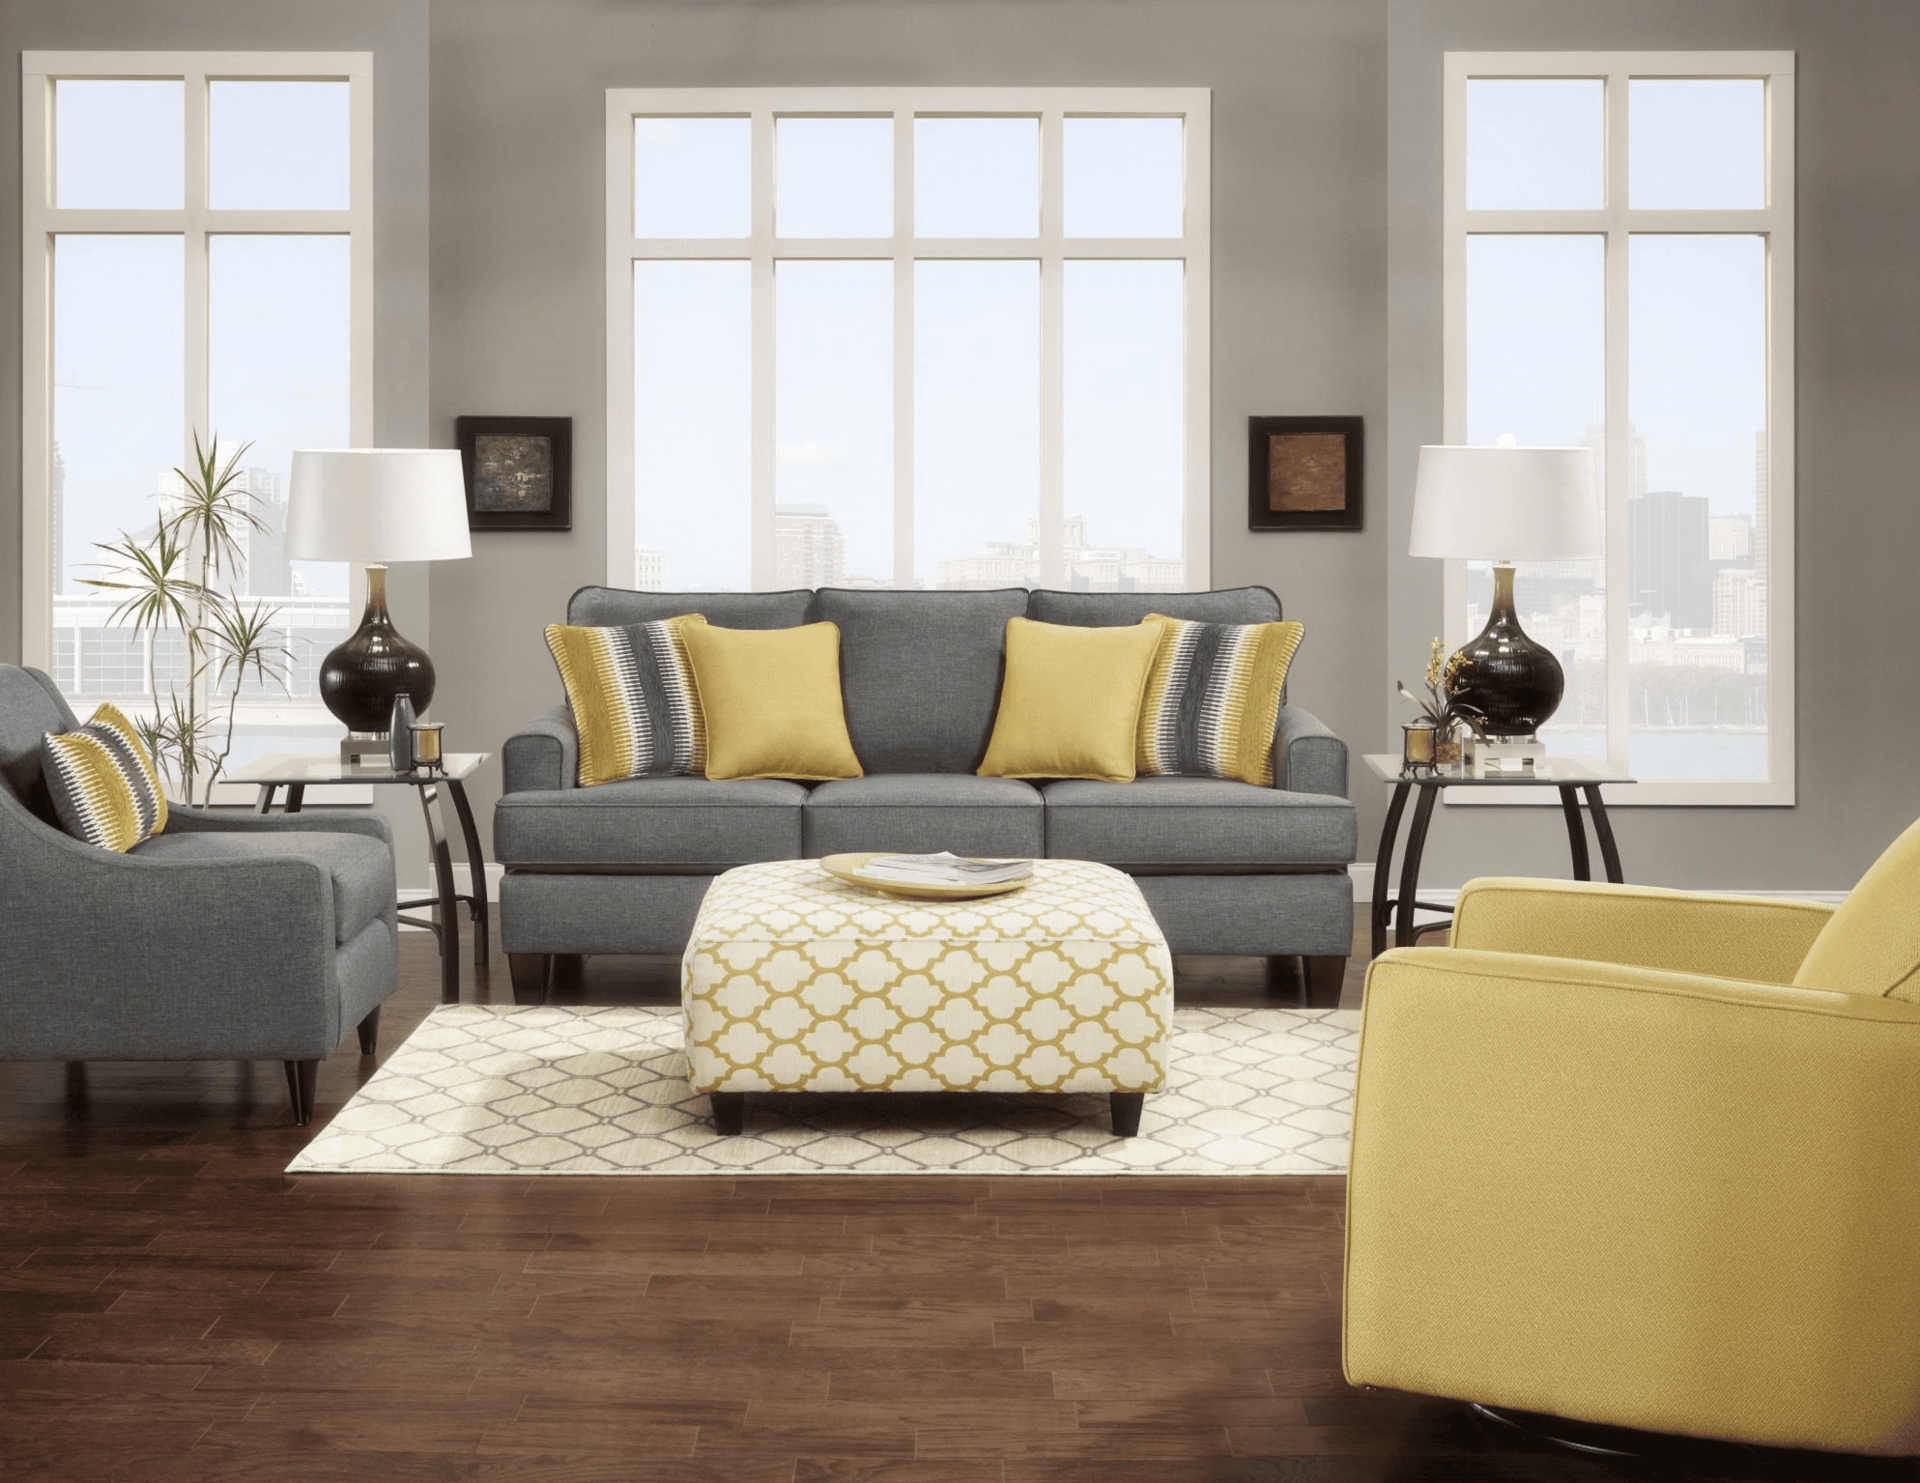 Blair's Discount Furniture In Macon Ga Sectional Sofas (View 7 of 10)